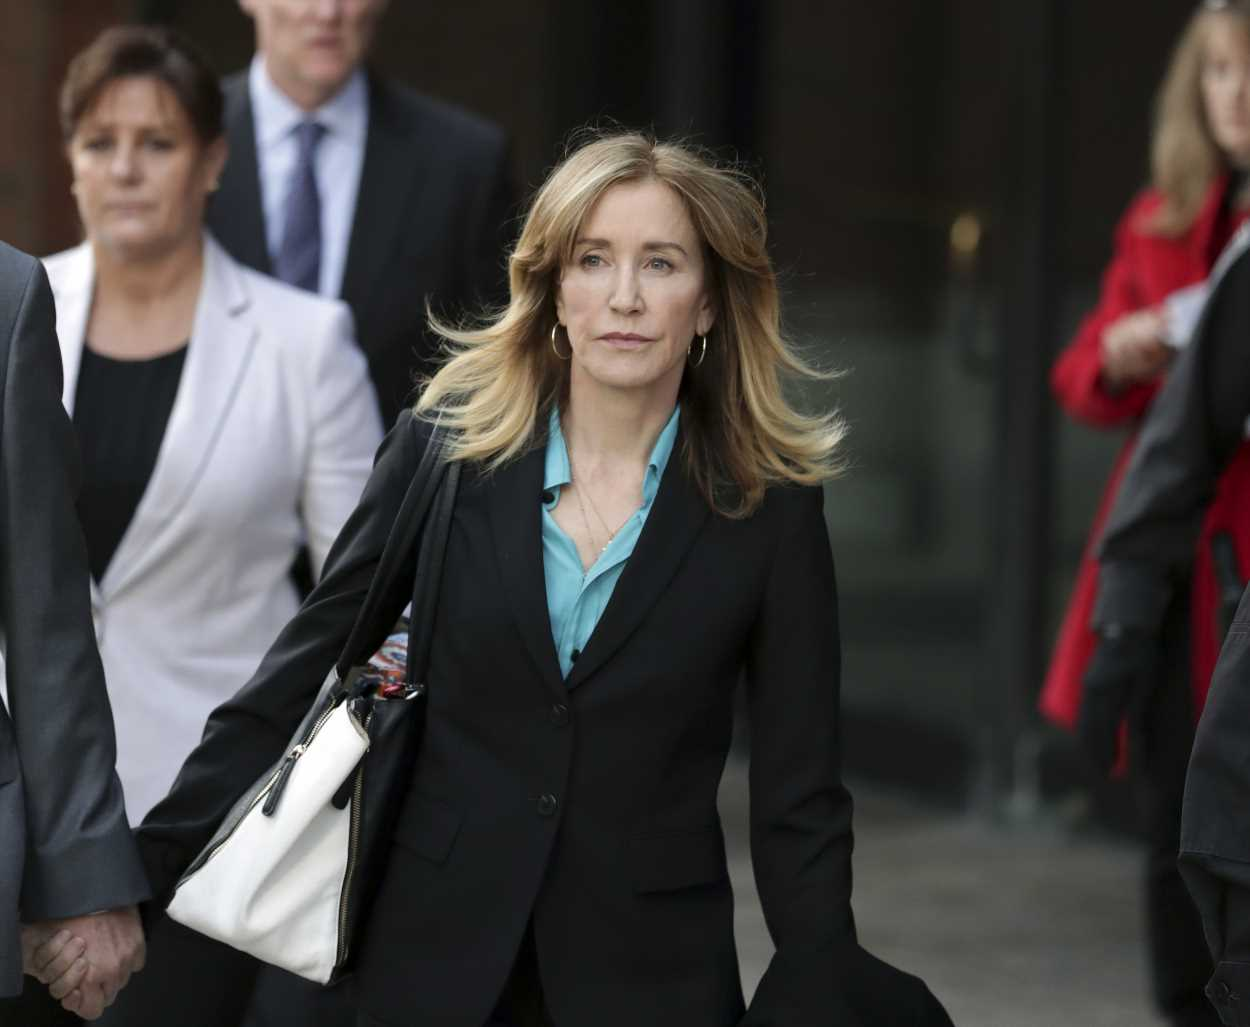 Felicity Huffman arrives in Boston for sentencing amid marital troubles: Was her husband with her?